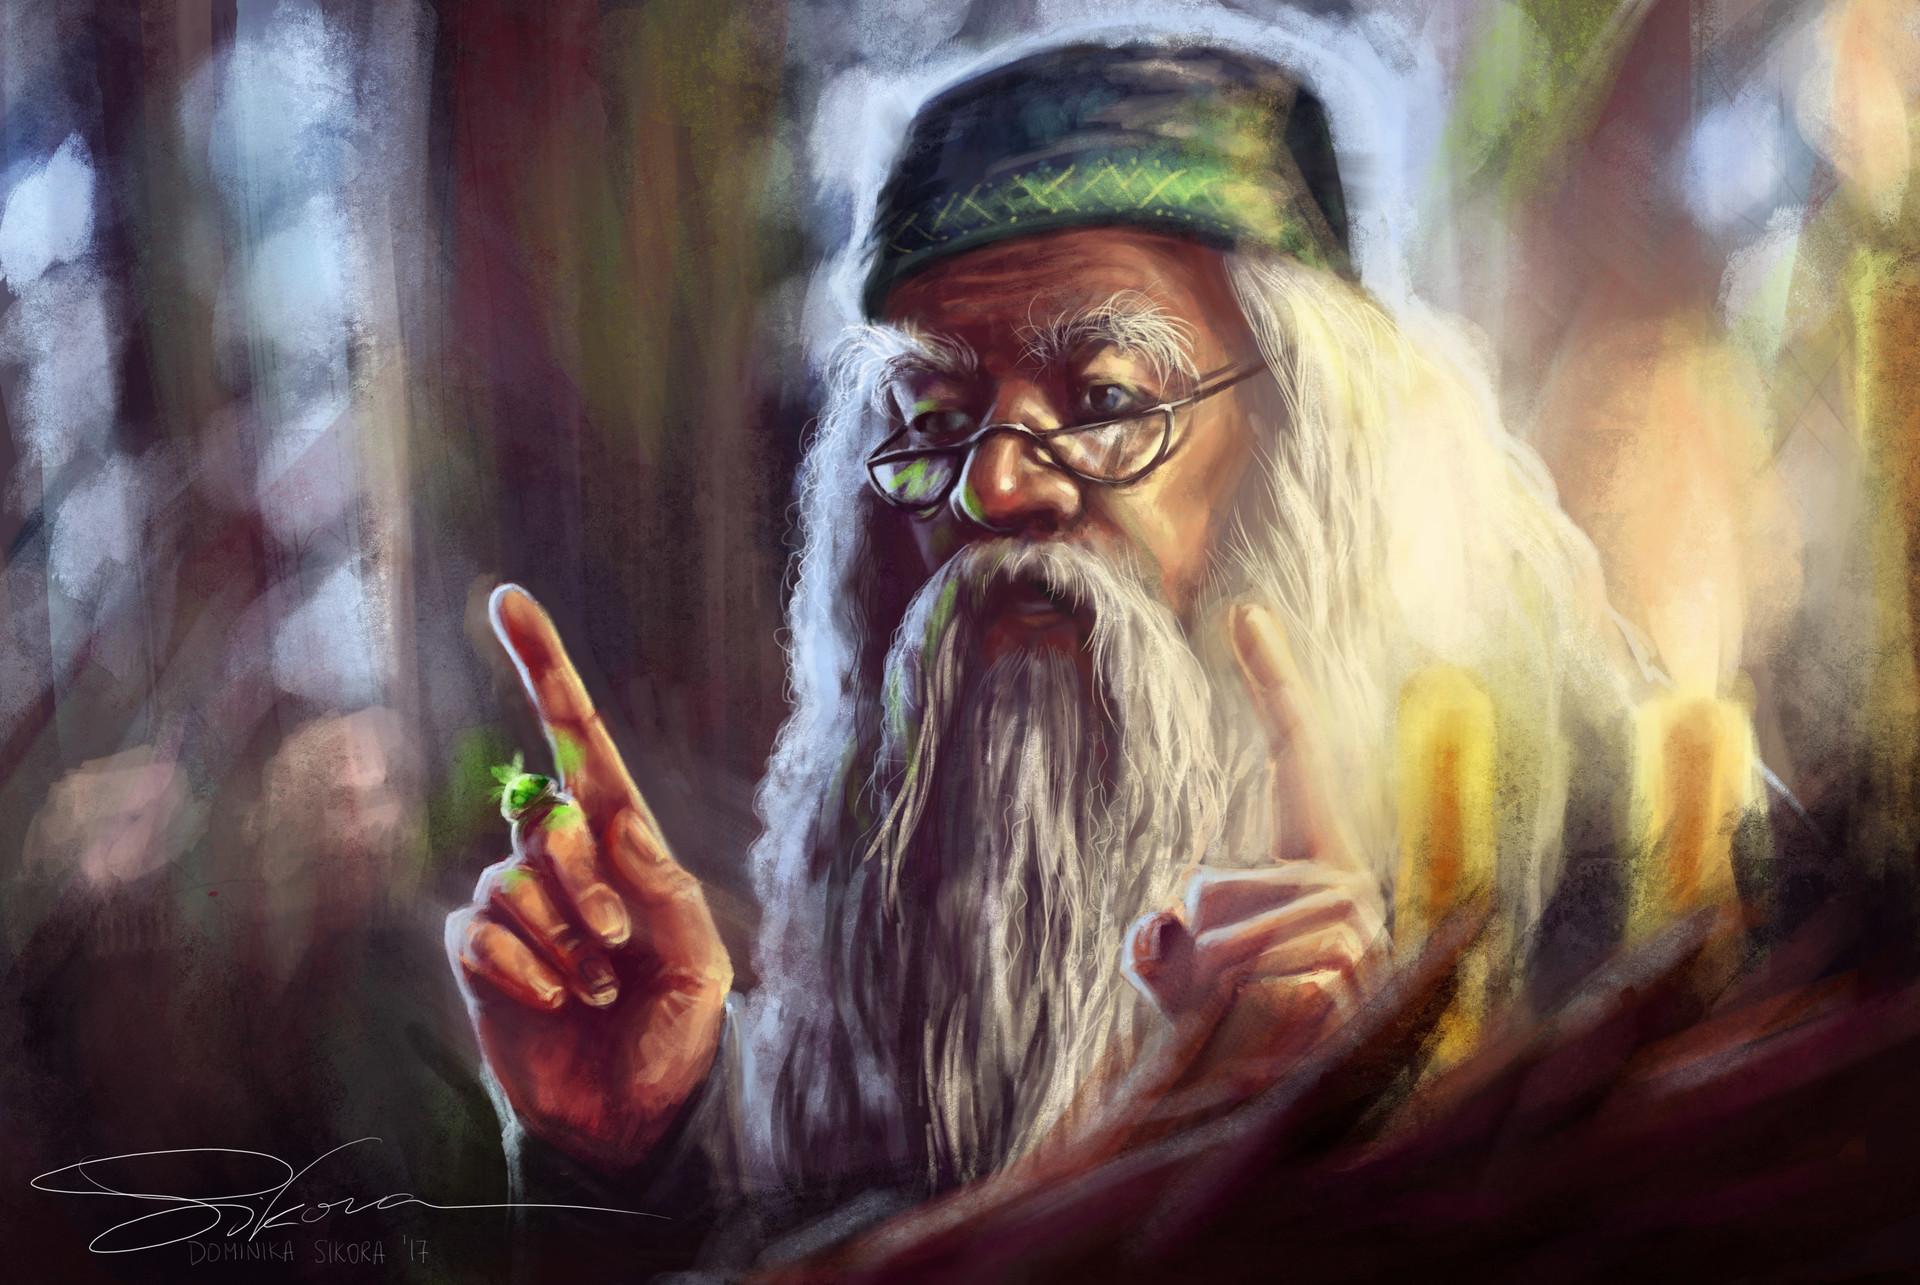 Dominika sikora albus dumbledore harry potter by makota dominika sikora